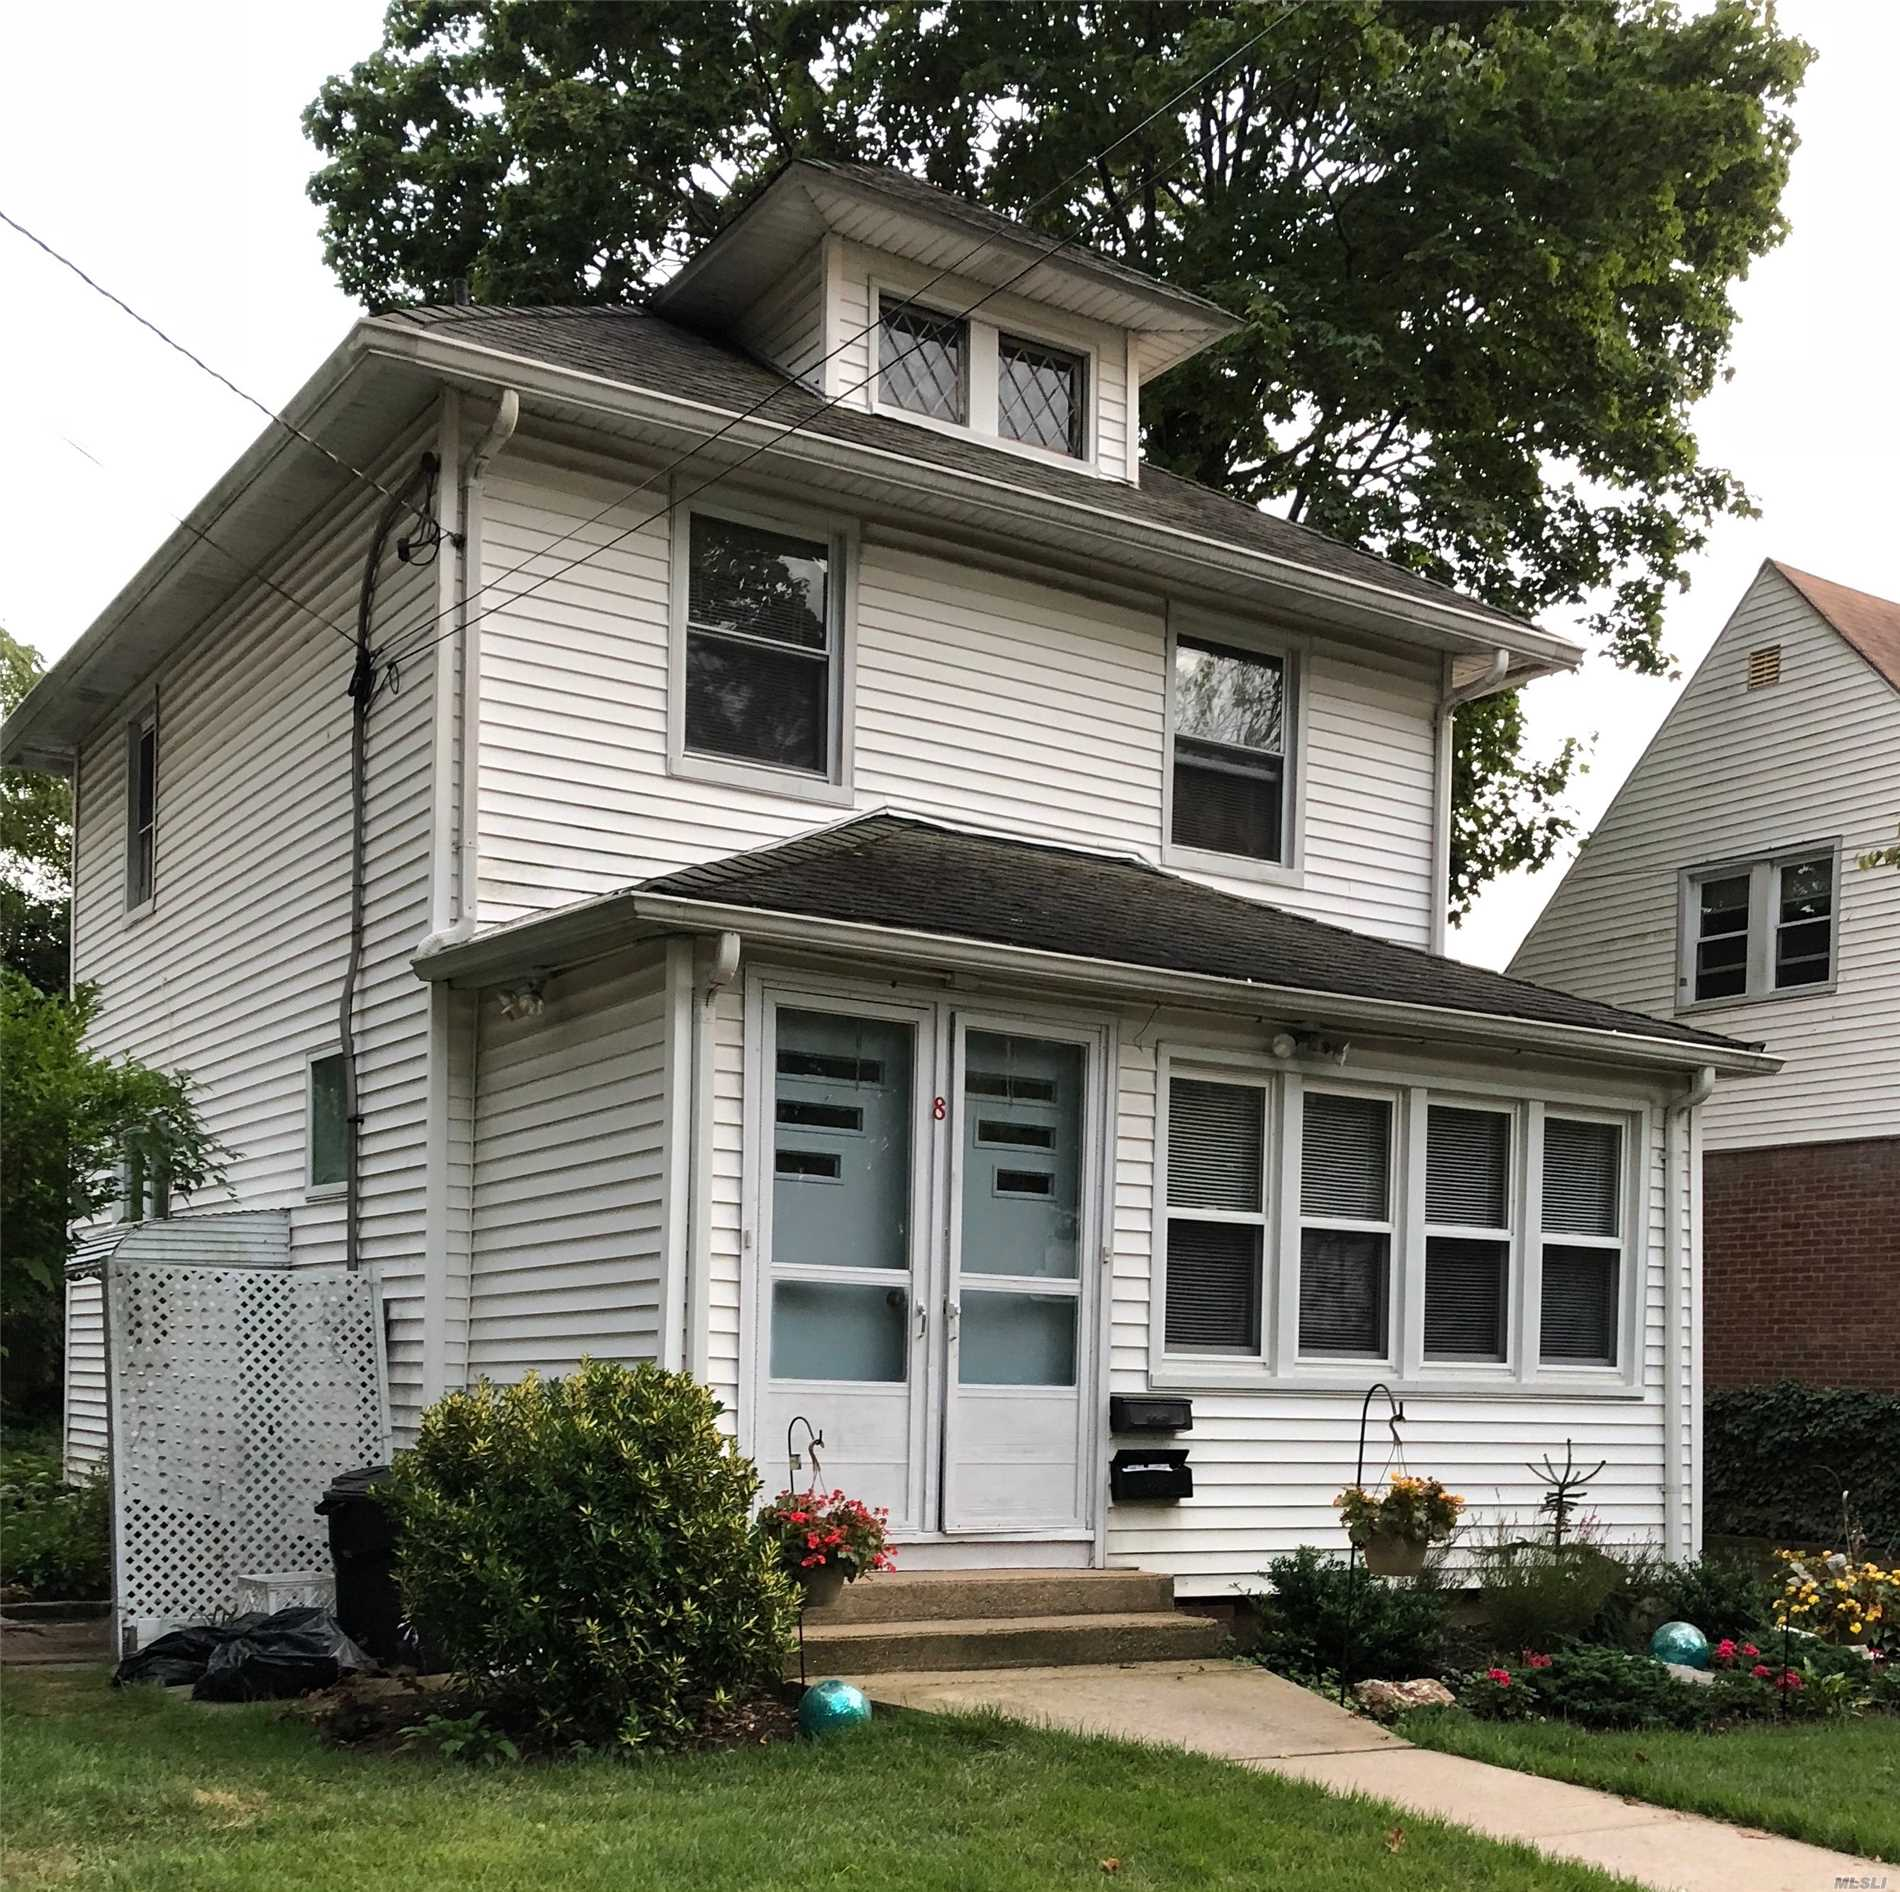 Fist Floor Apartment With One Bedroom And An Office/(Possible Second Small Br) Renovated Eat In Kitchen With New Appliances(Refrigerator, Stove, Dish Washer), Lr, Small Nook Off Kitchen, Full Bath W/ Shower, Basement With shared use Washer/Dryer, Back Yard Porch, Use Of Yard, Shared Garage/Driveway. Heat, Cook Gas,  Water Included.